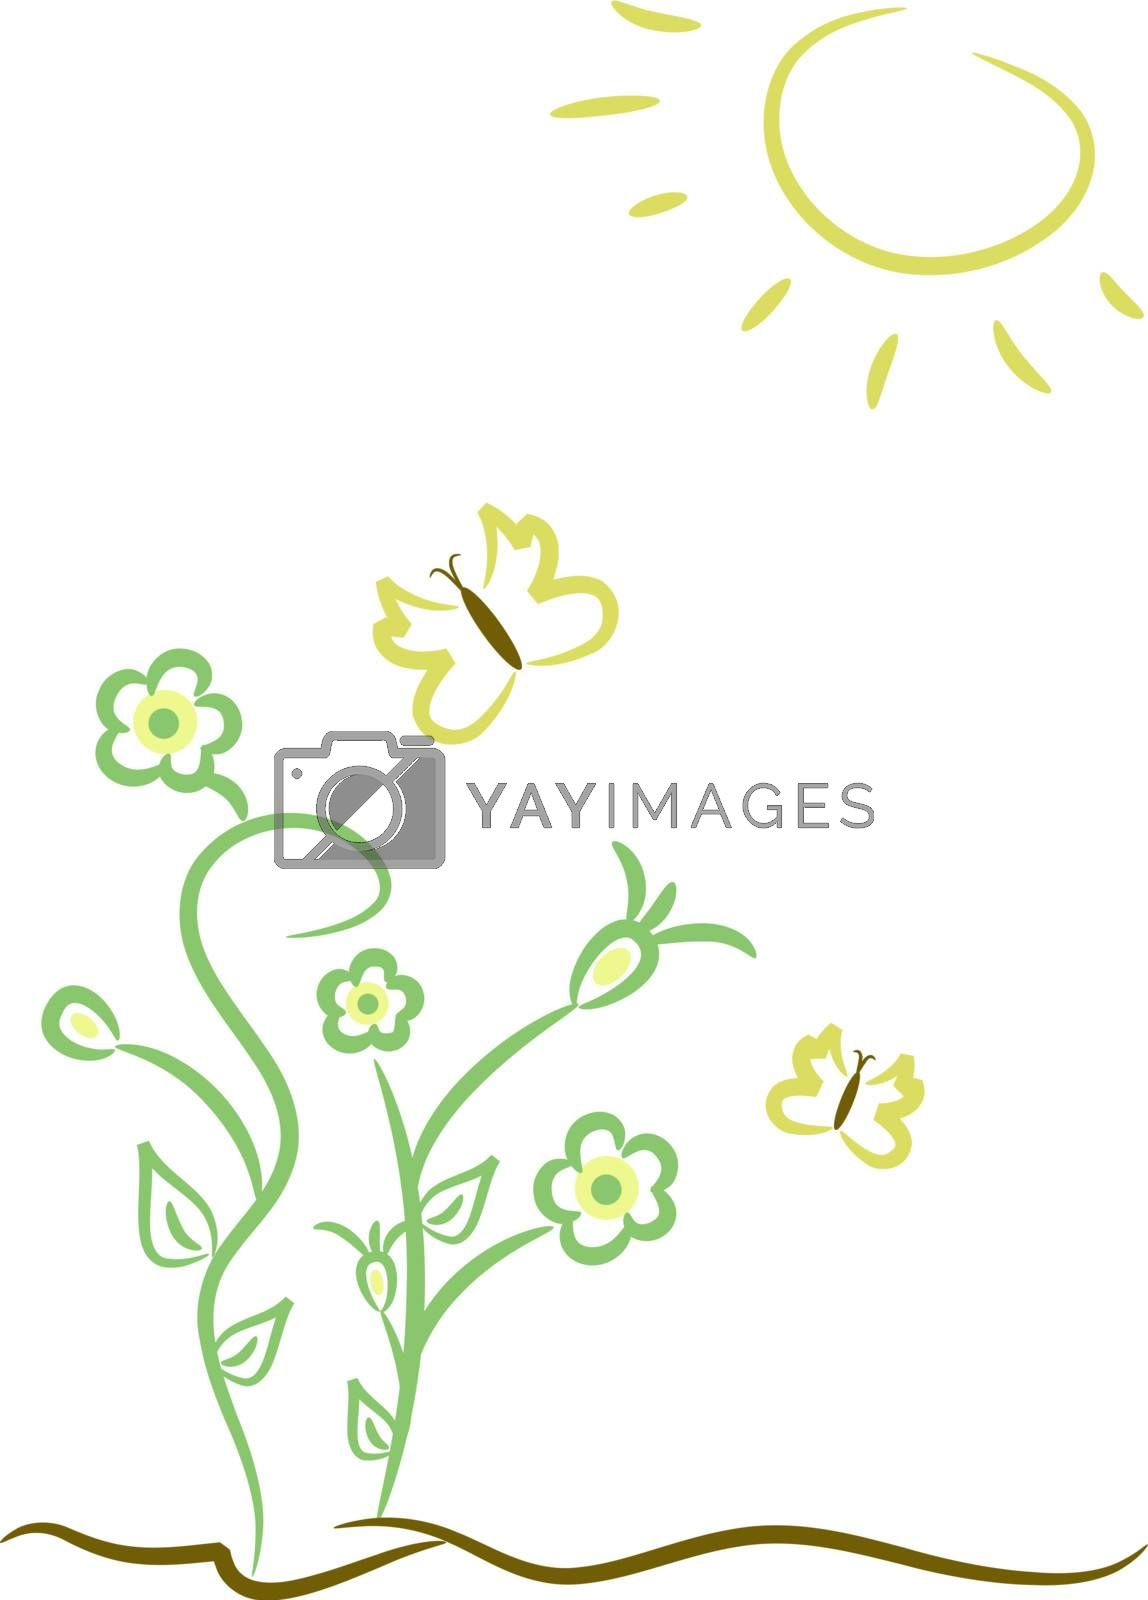 Pastel-colored illustration of flower, butterflies and sun